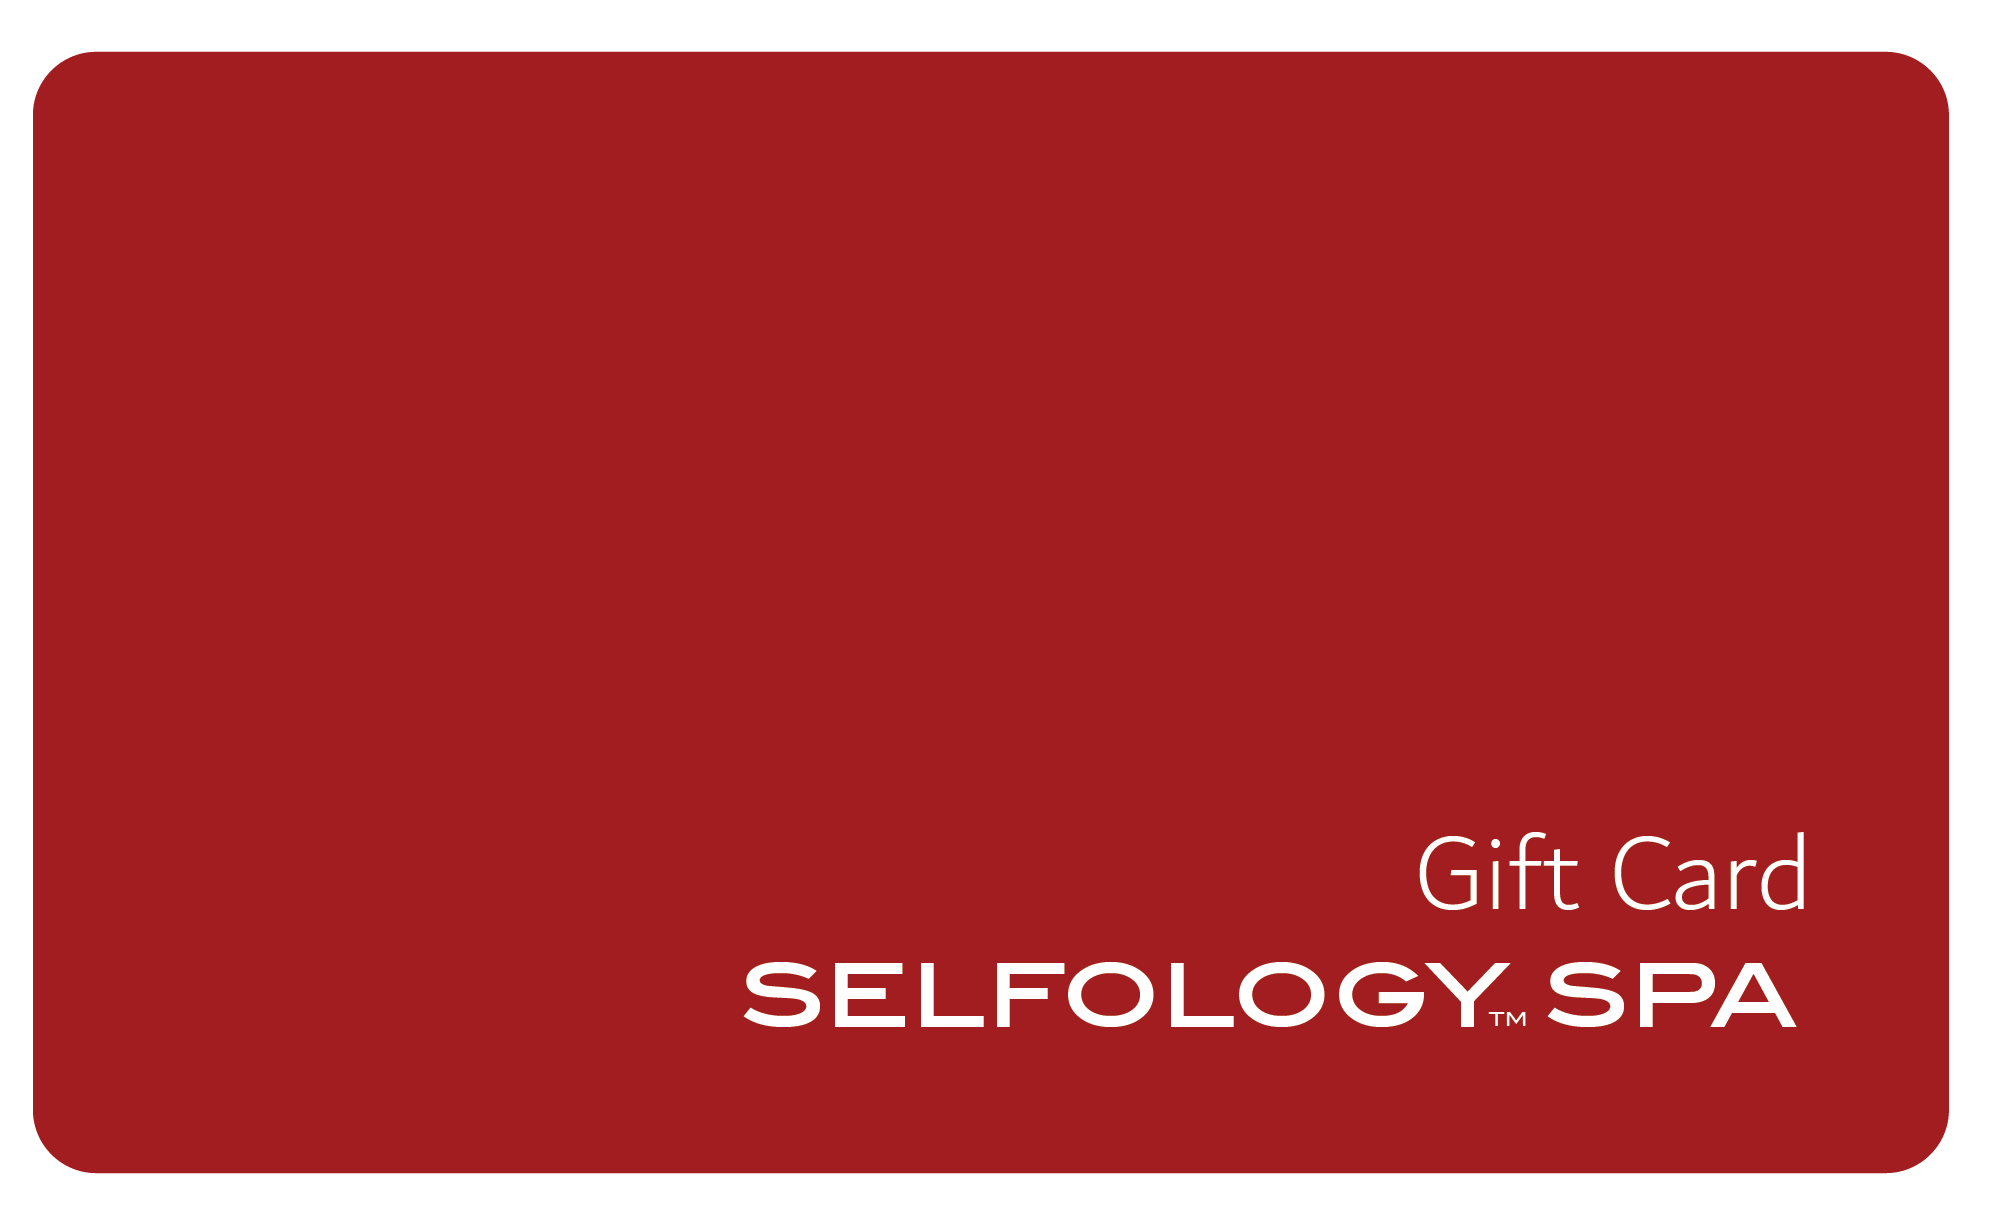 Gift Card - A Gift of Selfology